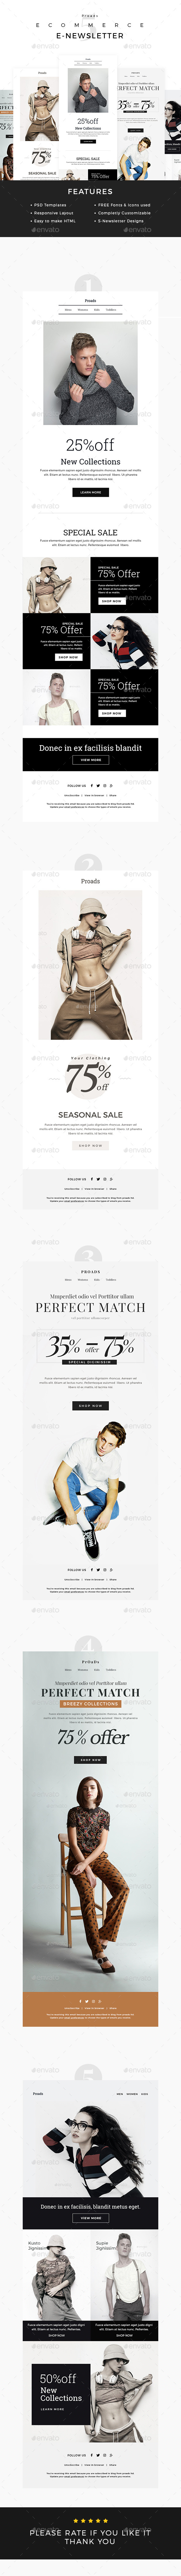 Pro E-Commerce Newsletter Template - E-newsletters Web Elements